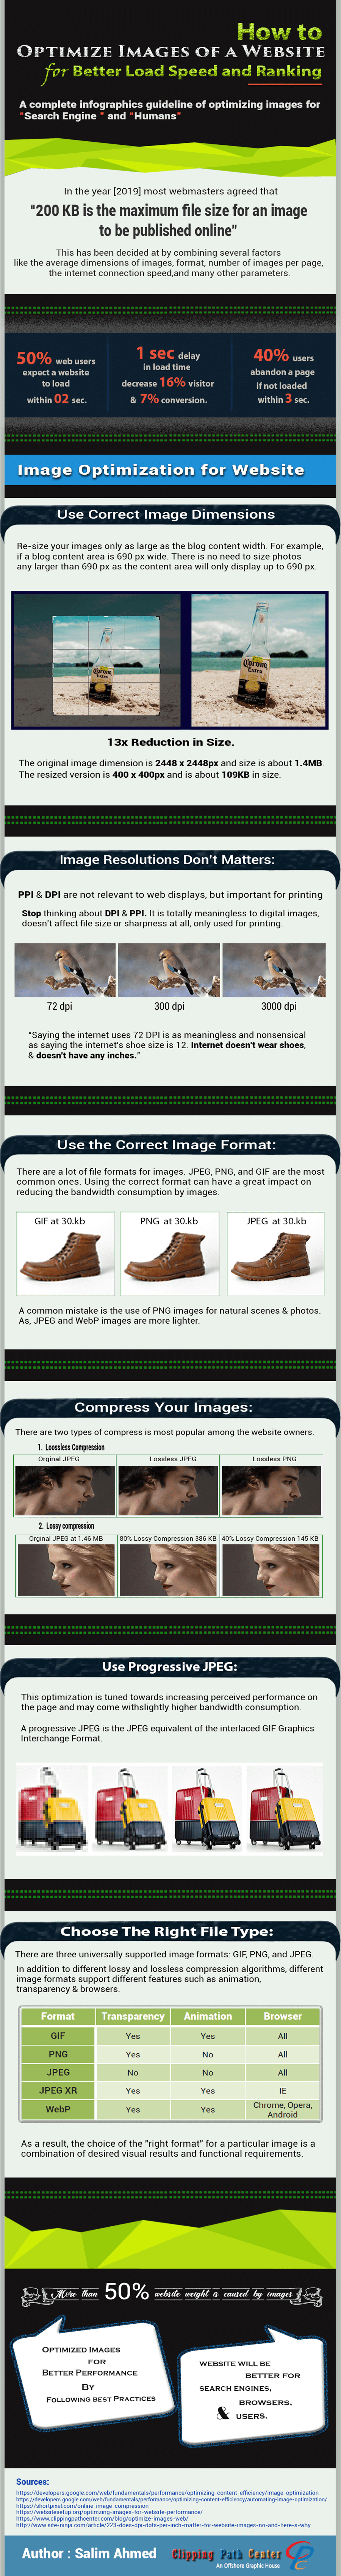 info-graphics Optimize Images of a Website